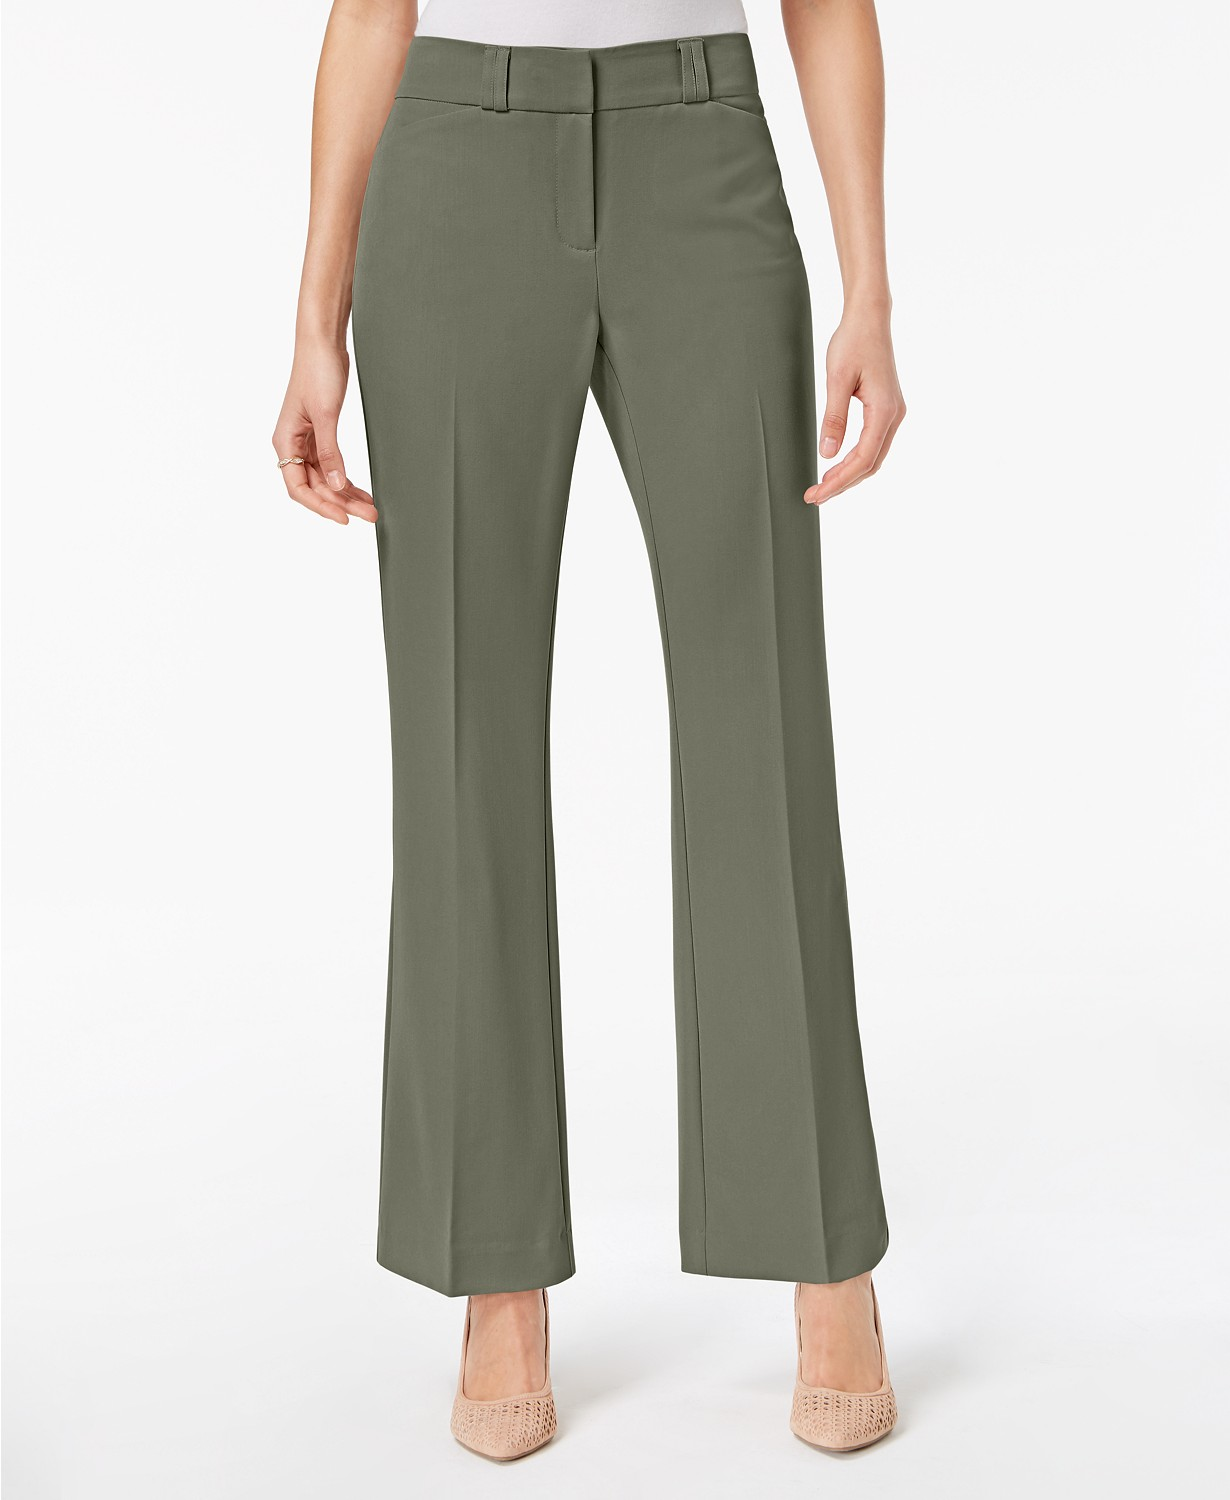 Save 24% on Alfani Petite Curvy Bootcut Pants